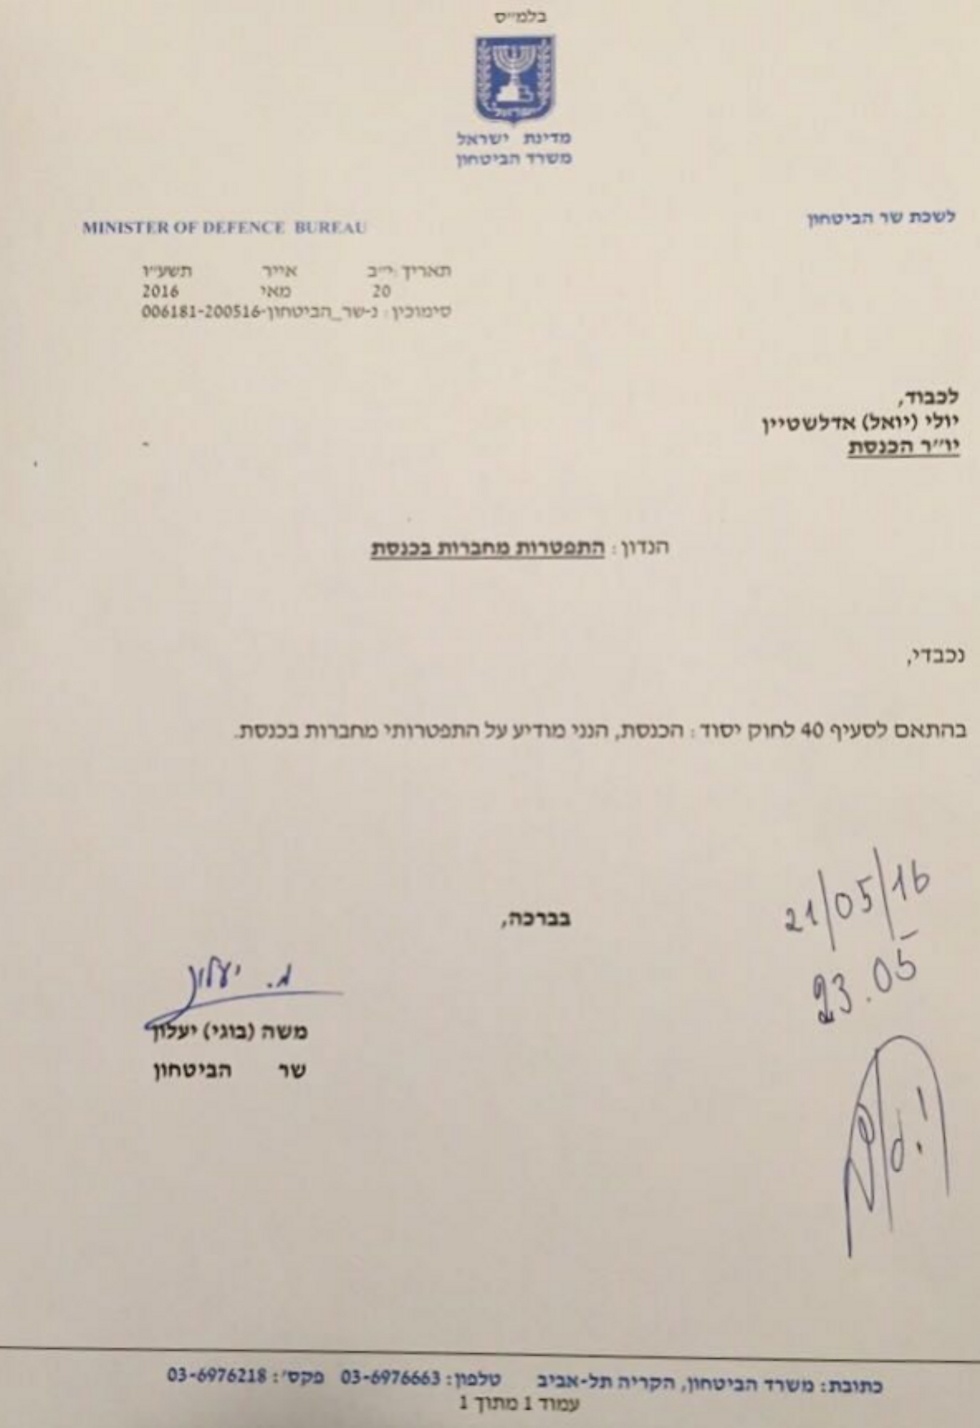 Ya'alon's letter of resignation from the Knesset.